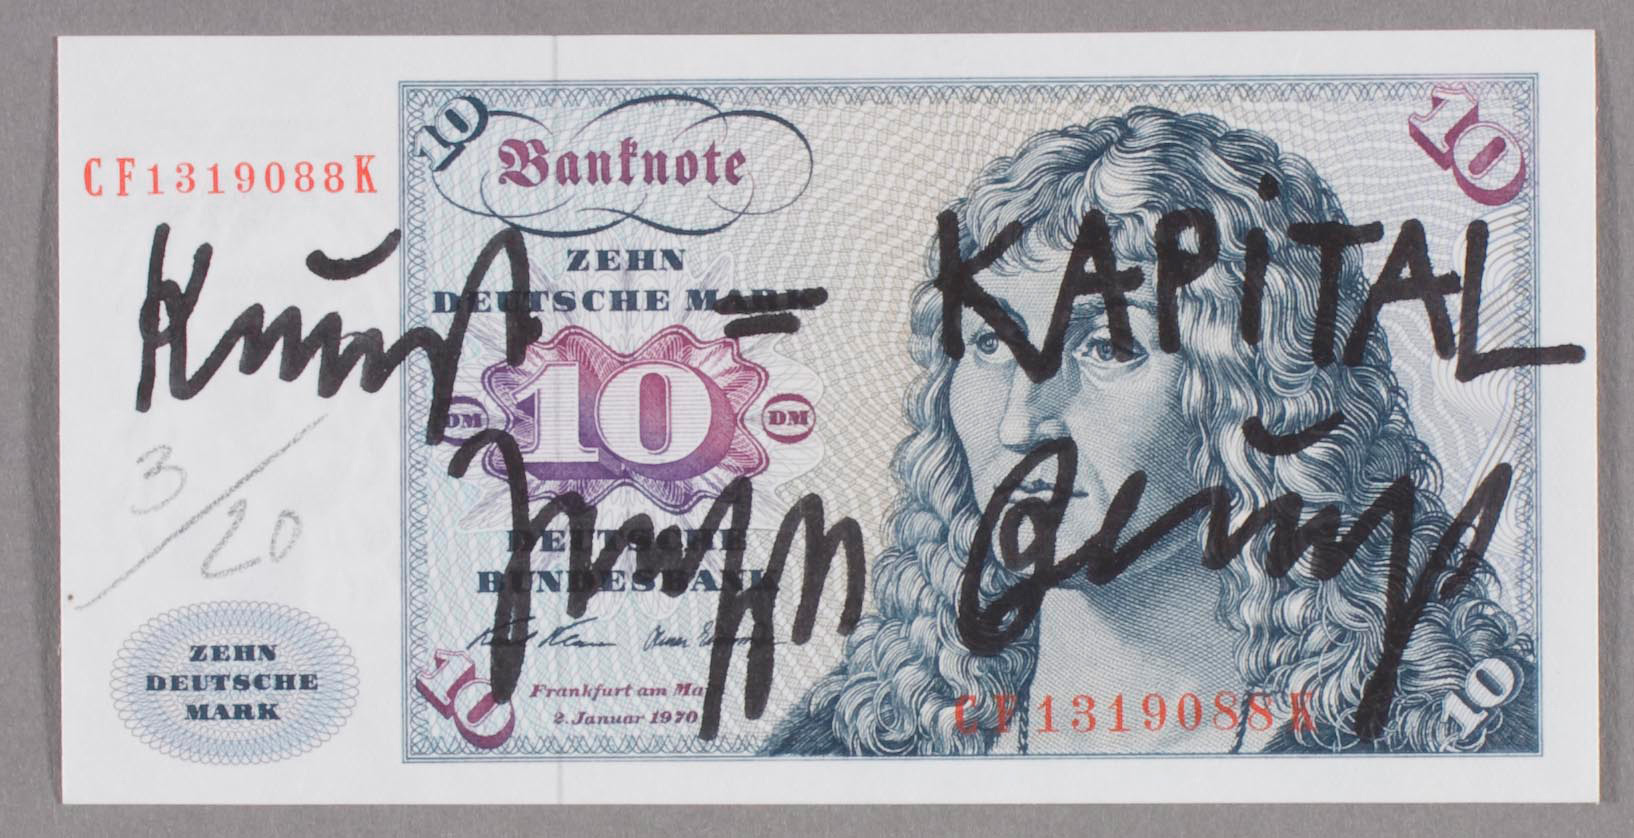 Joseph Beuys - Kunst=CAPITAL, 1979, banknote with handwritten addition